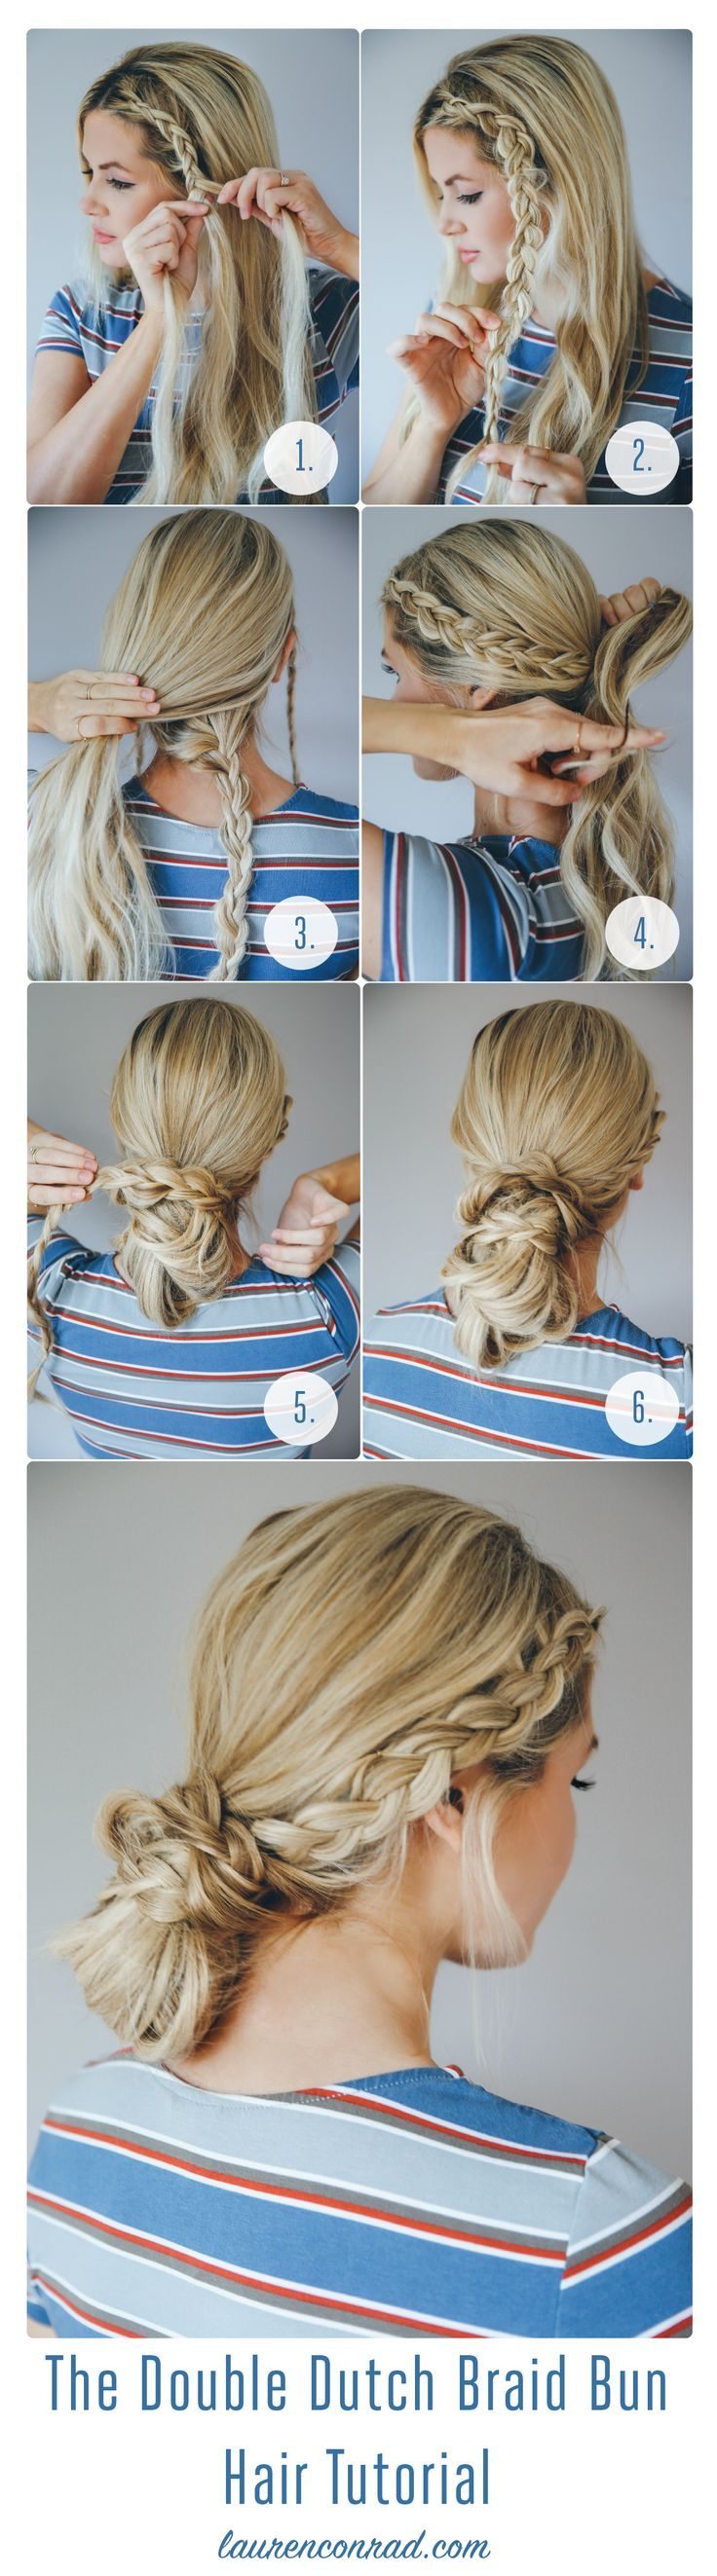 461 best Hairstyles images on Pinterest